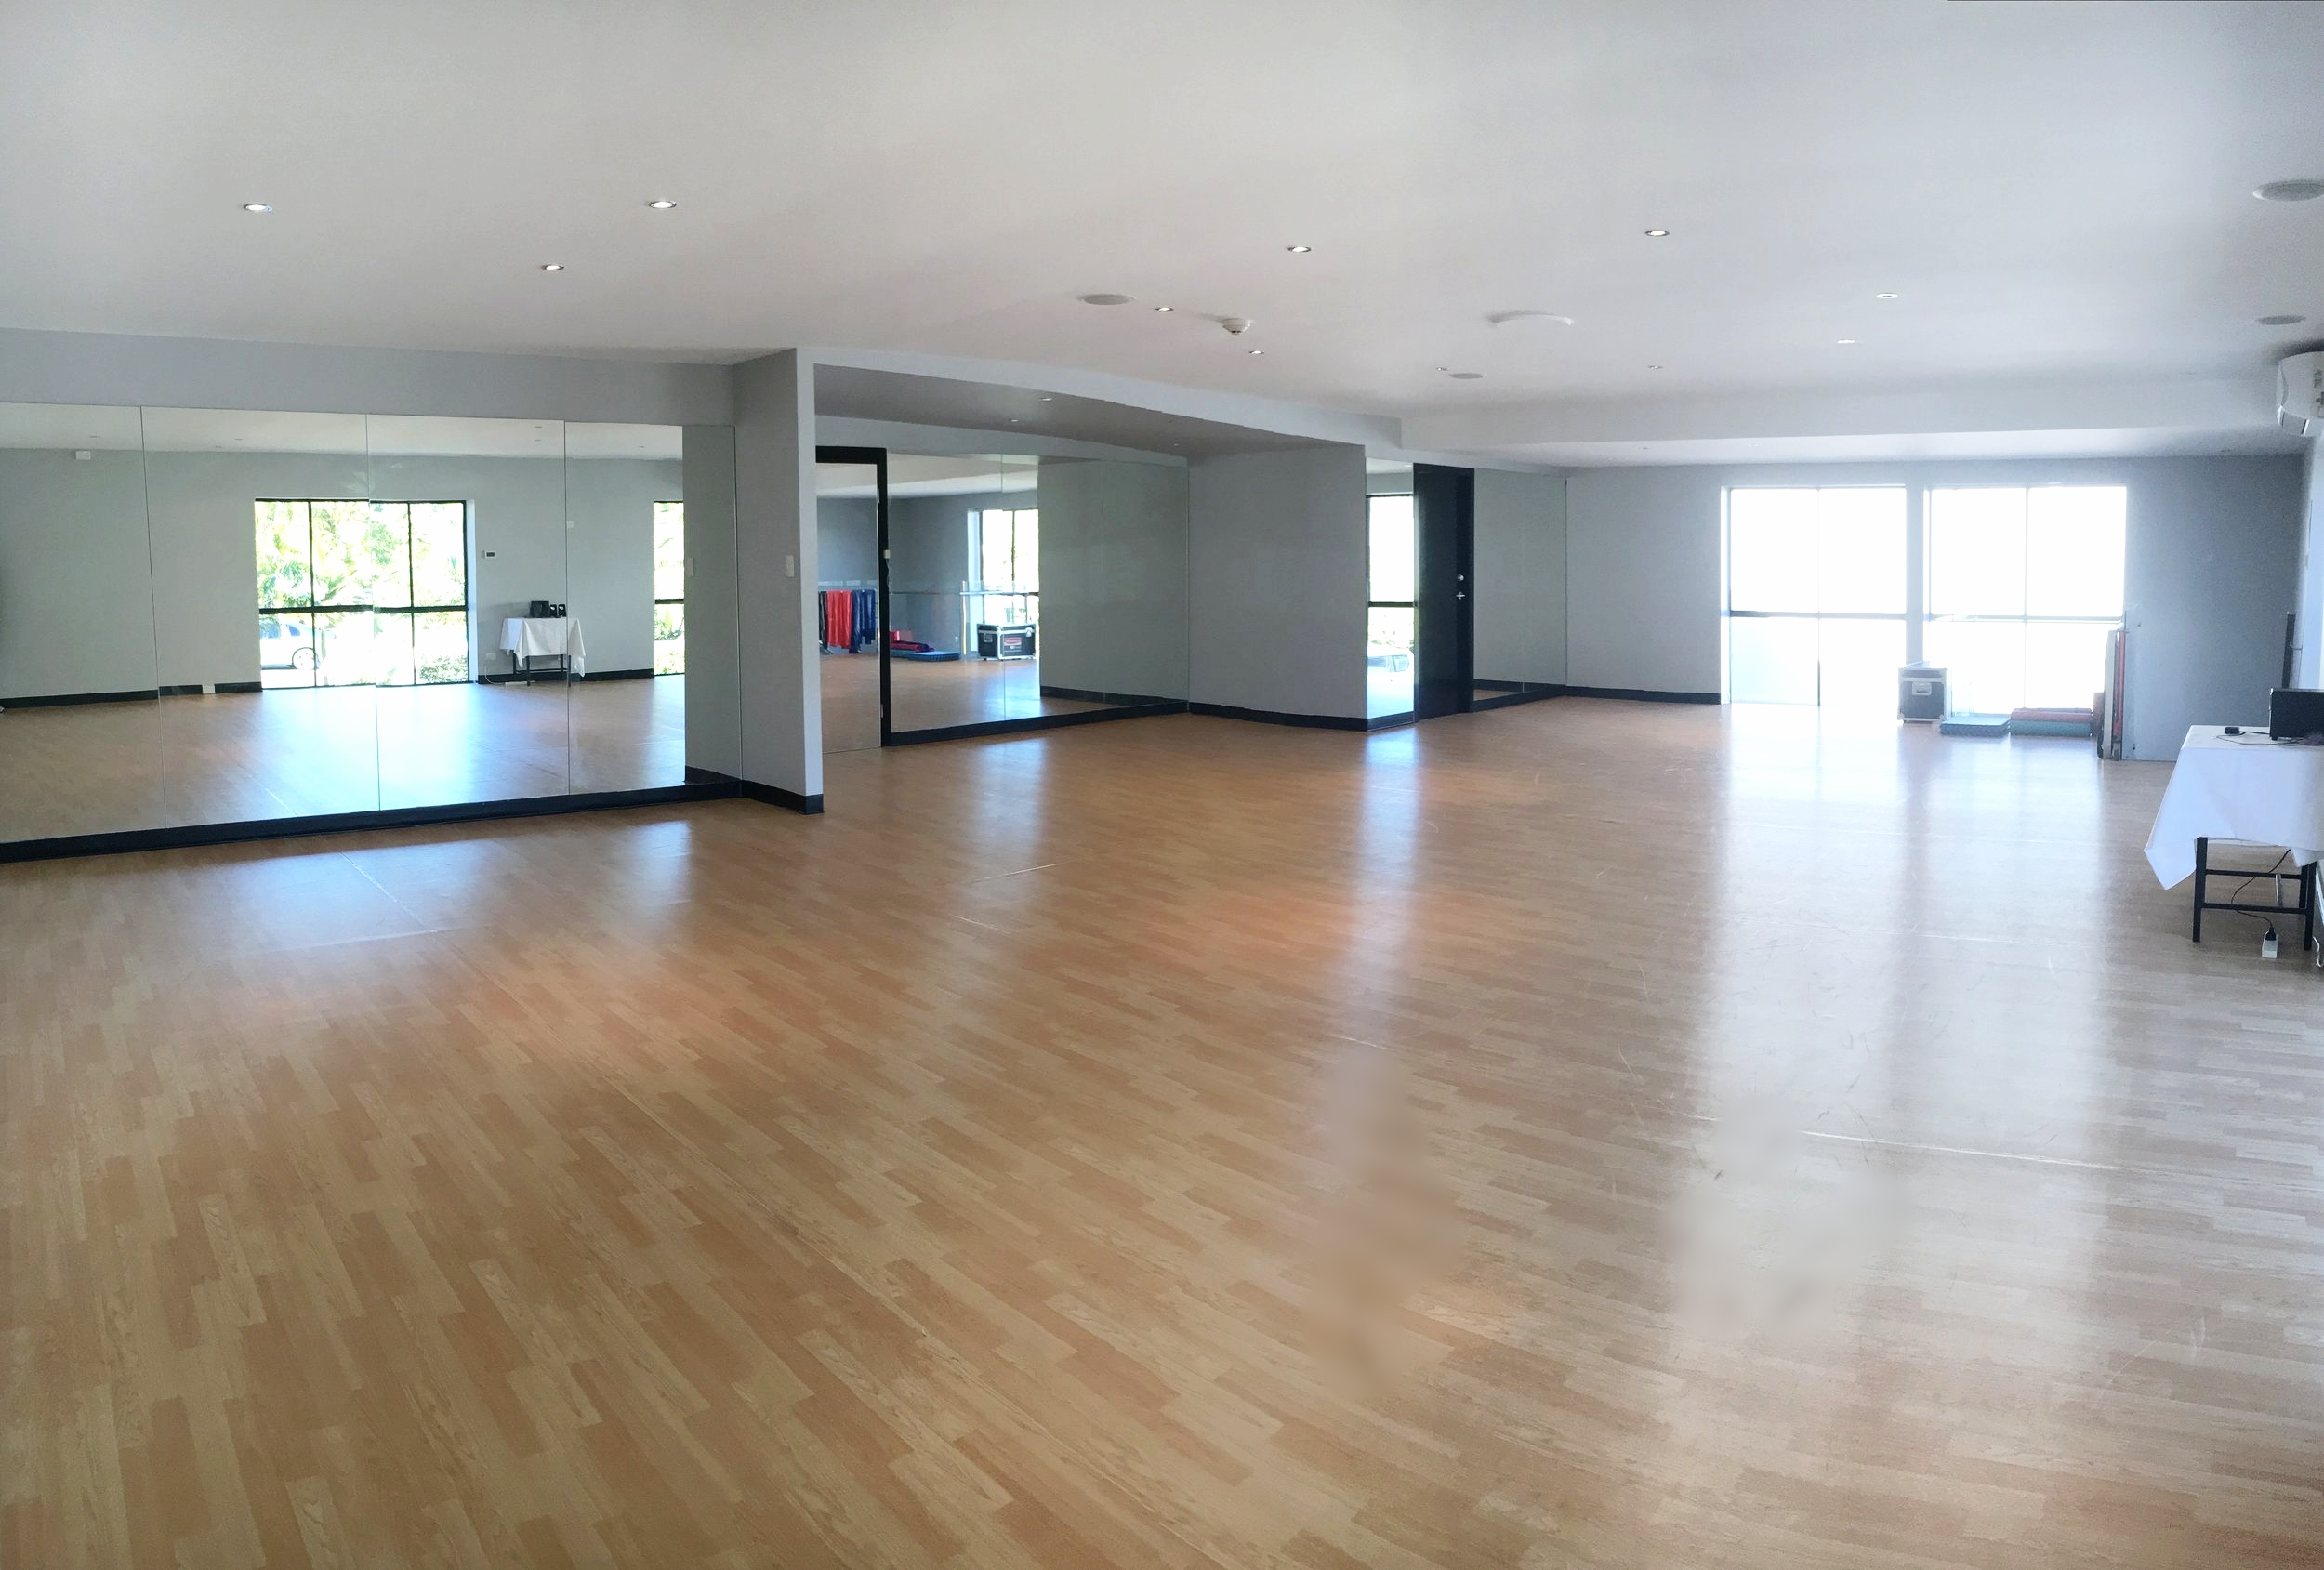 'Off-Broadway' - Air-conditioned, Fitness, Private Dance and Film & TV Studio. $40 an hour.